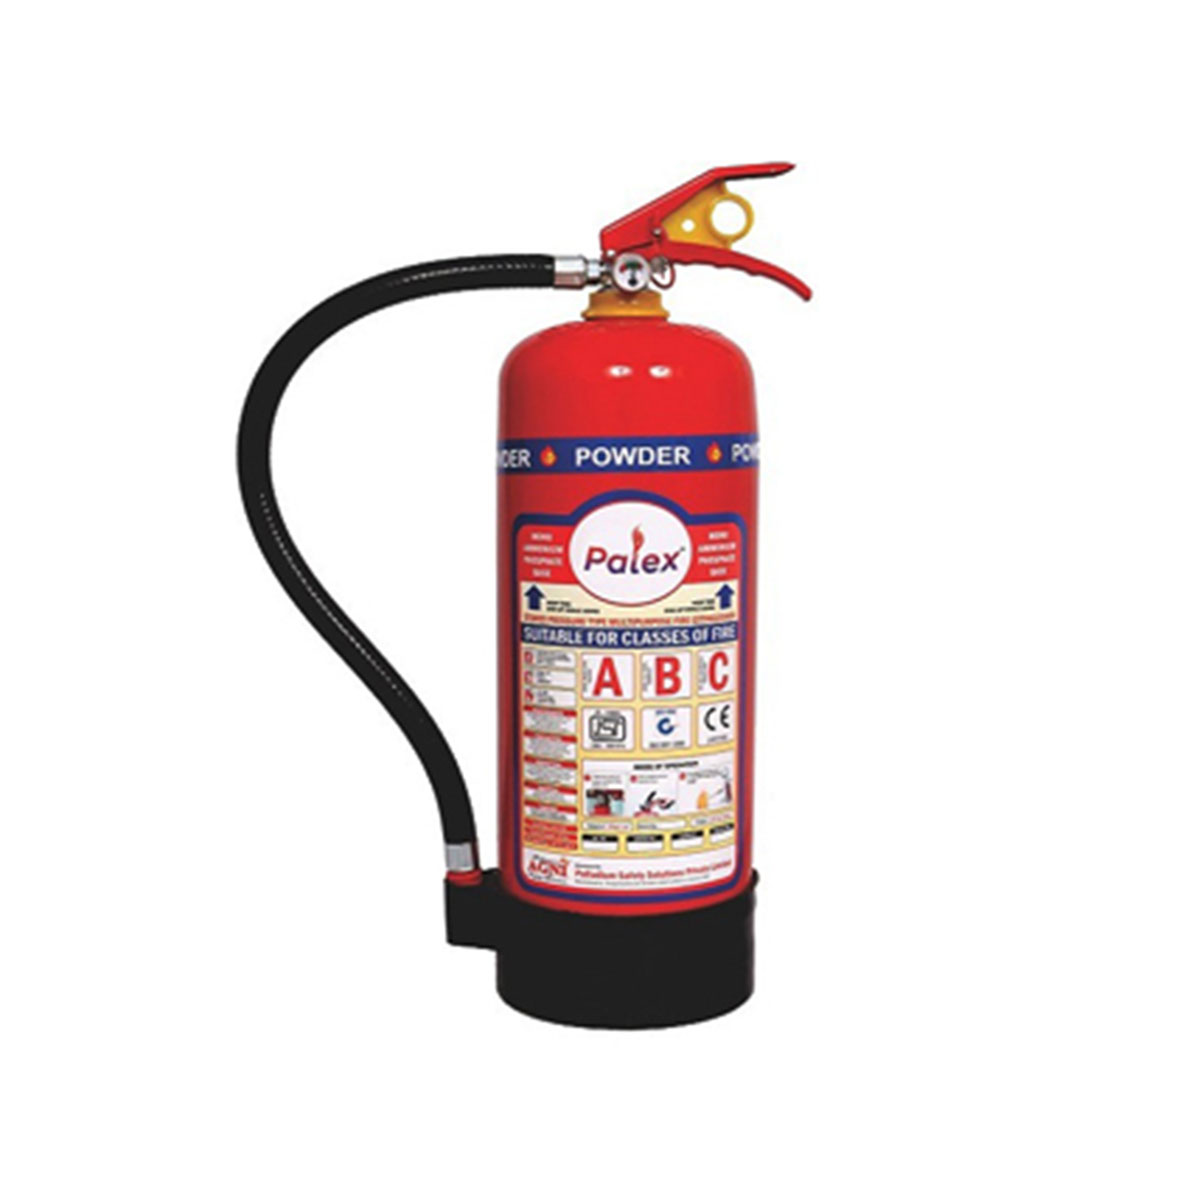 Palex ABC Fire Extinguisher 9KG